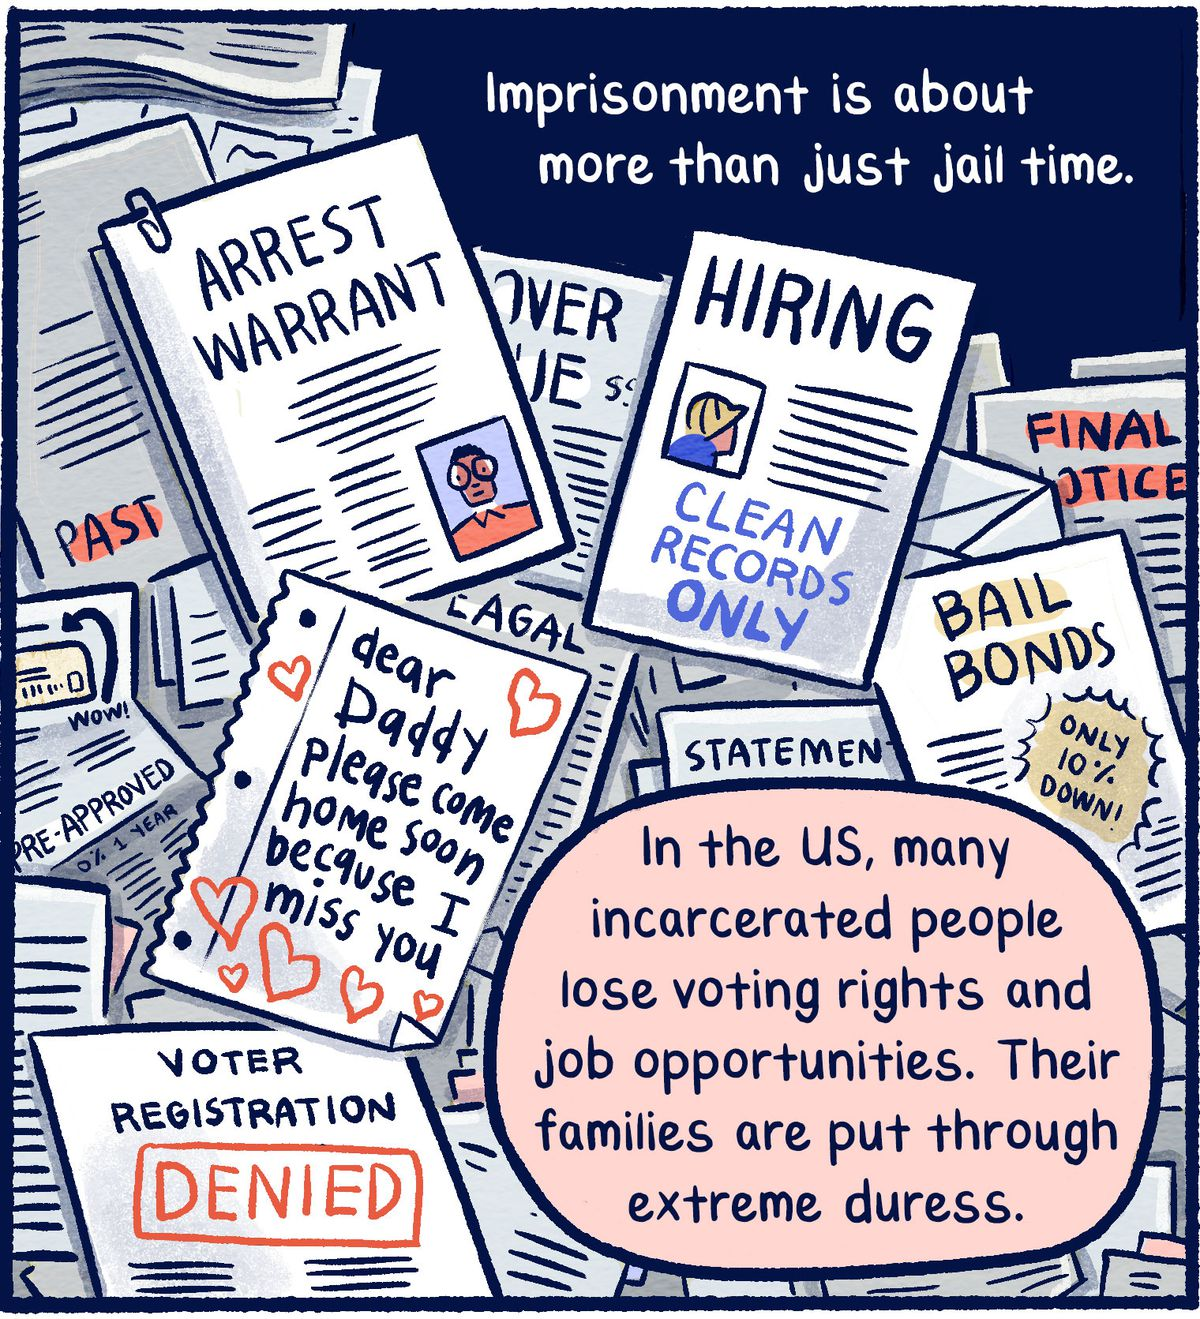 Imprisonment is about more than just jail time. In the US, many incarcerated people lose voting rights and job opportunities. Their families are put through extreme duress.